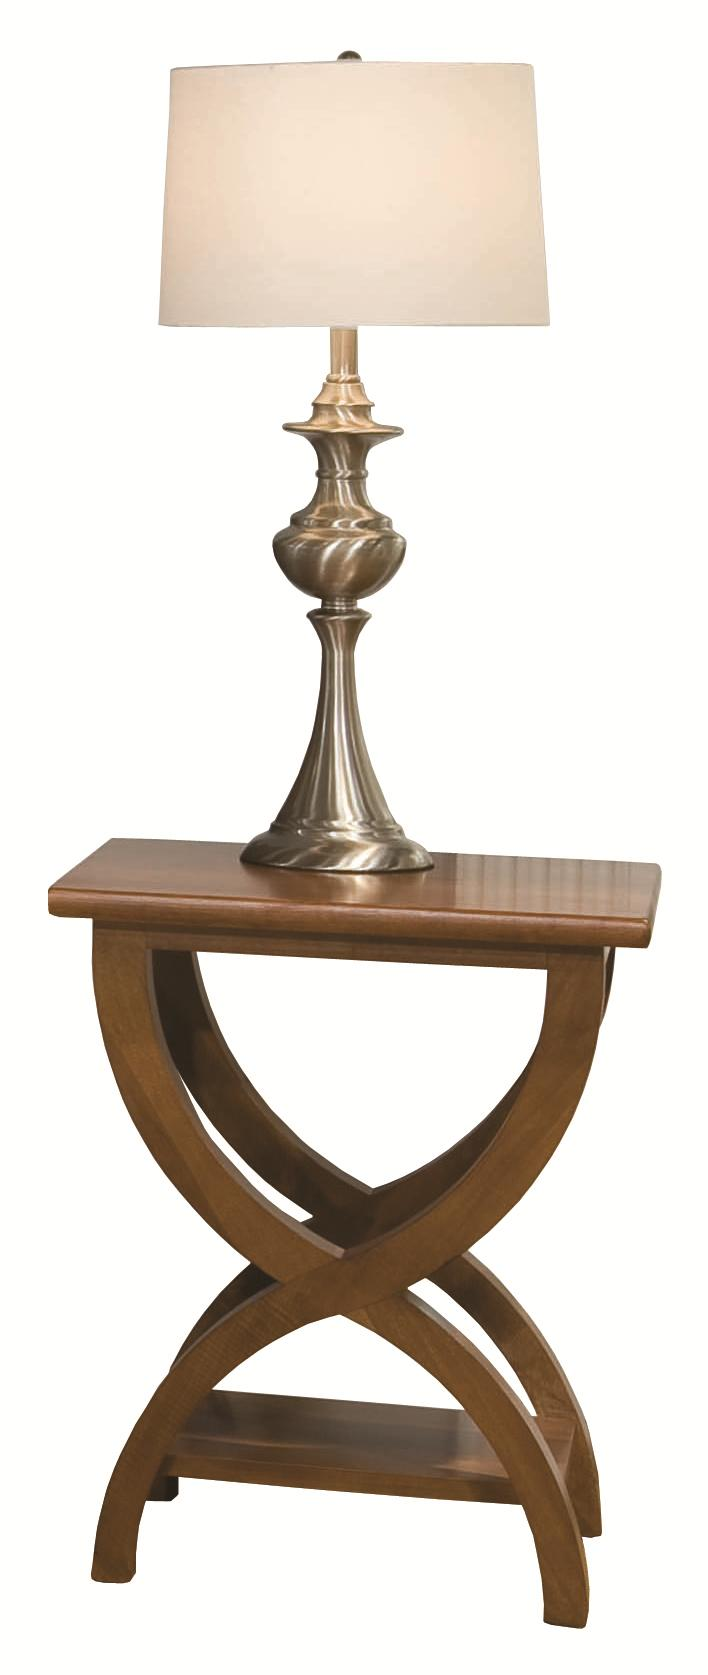 Durham Occasional Tables Durham Transitional Chairside Table - Item Number: 900-532D